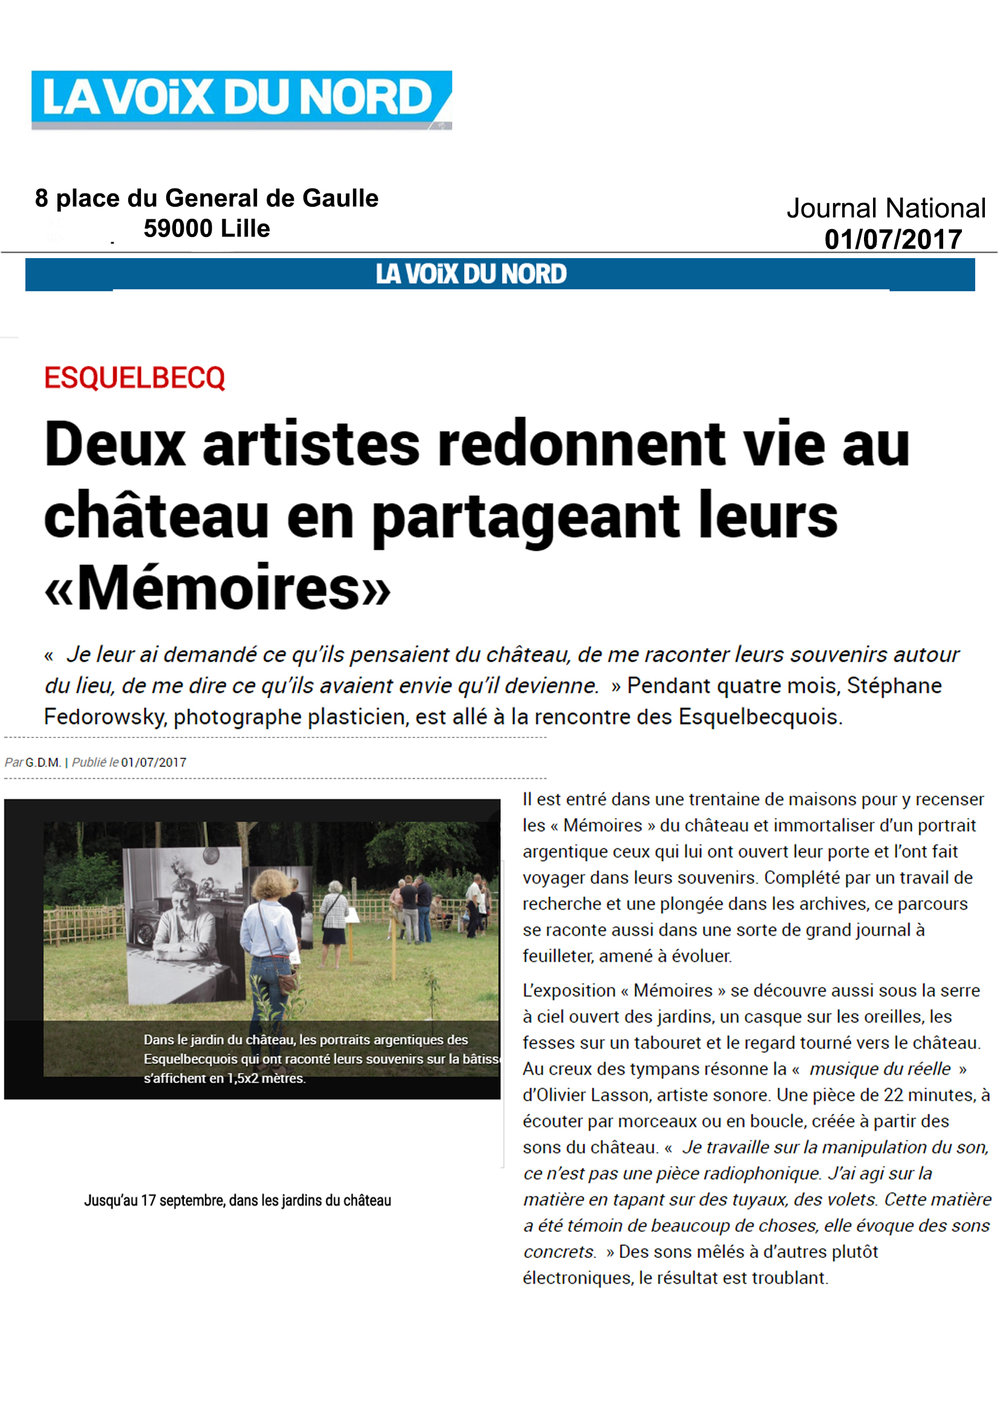 2017journal voix du nord press.jpg